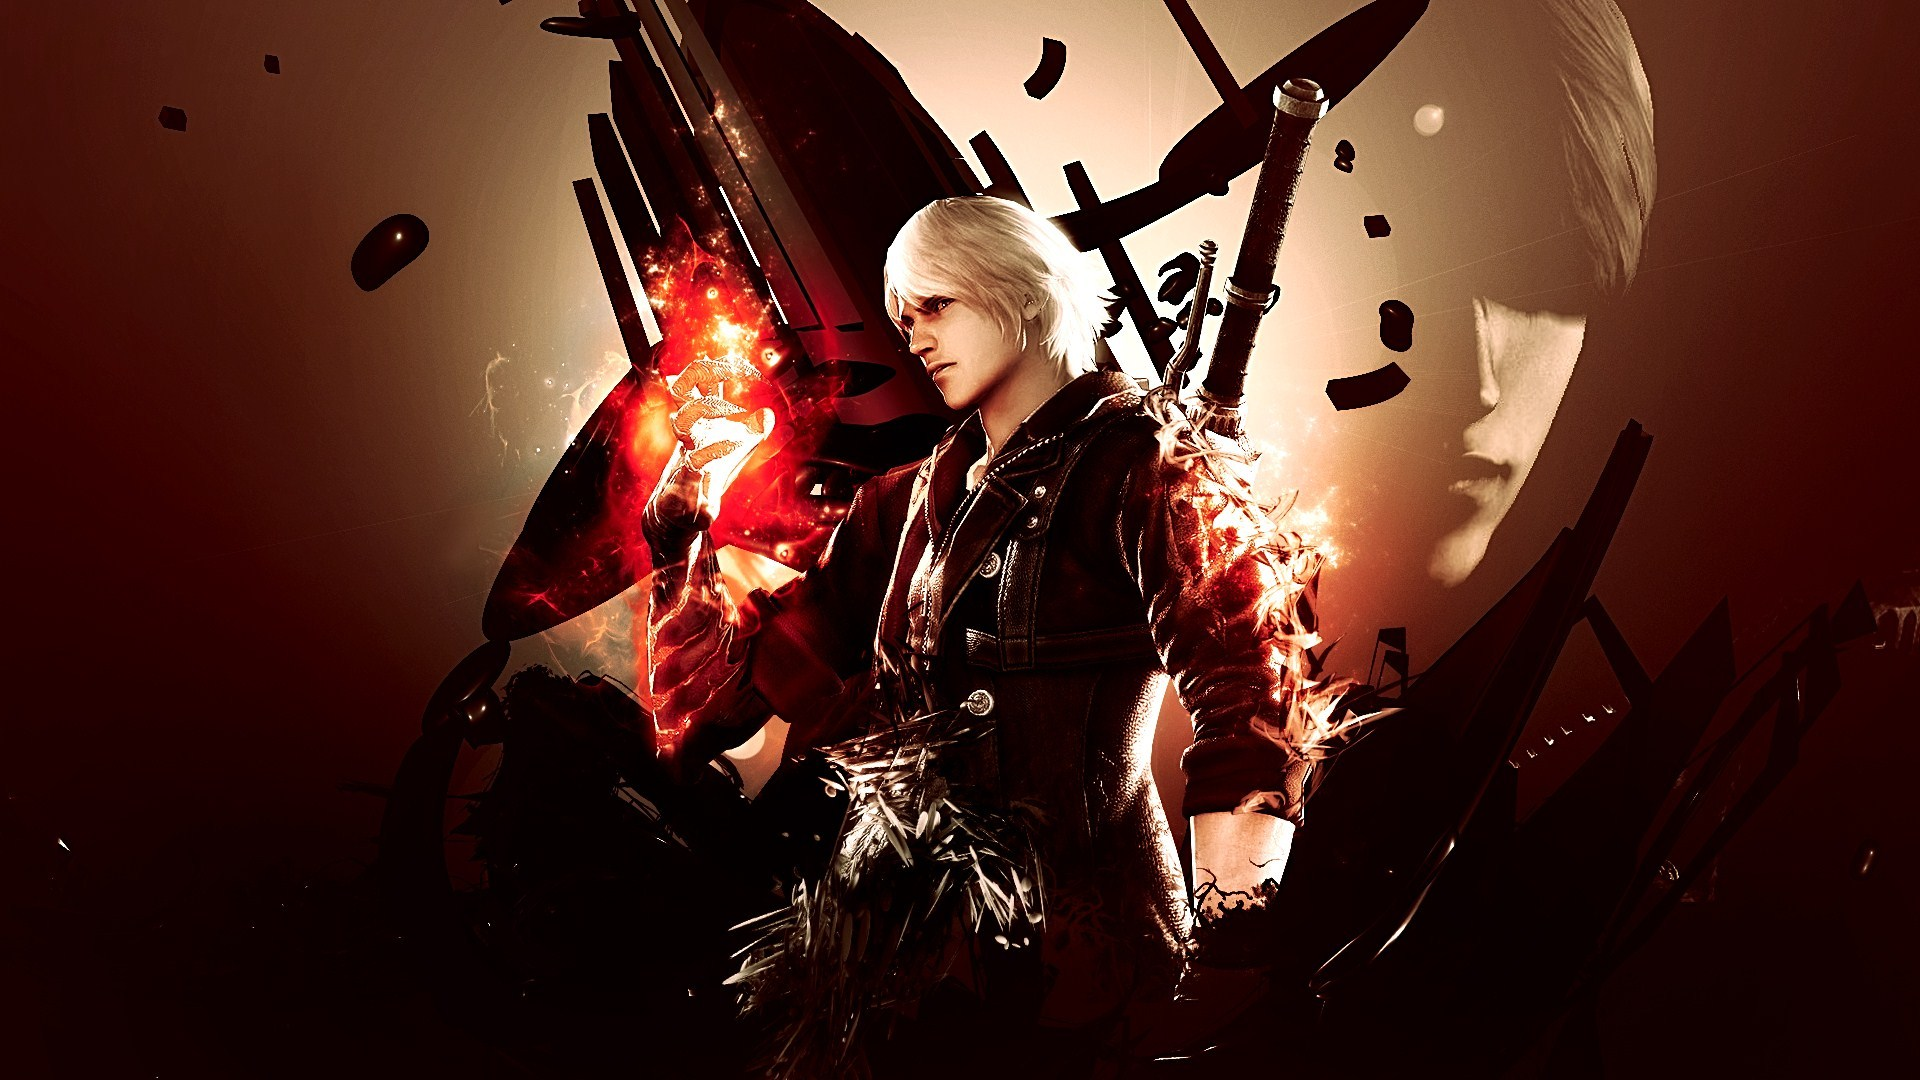 Devil May Cry 5 Wallpaper wallpapers Devil May Cry 5 Wallpaper stock 1920x1080